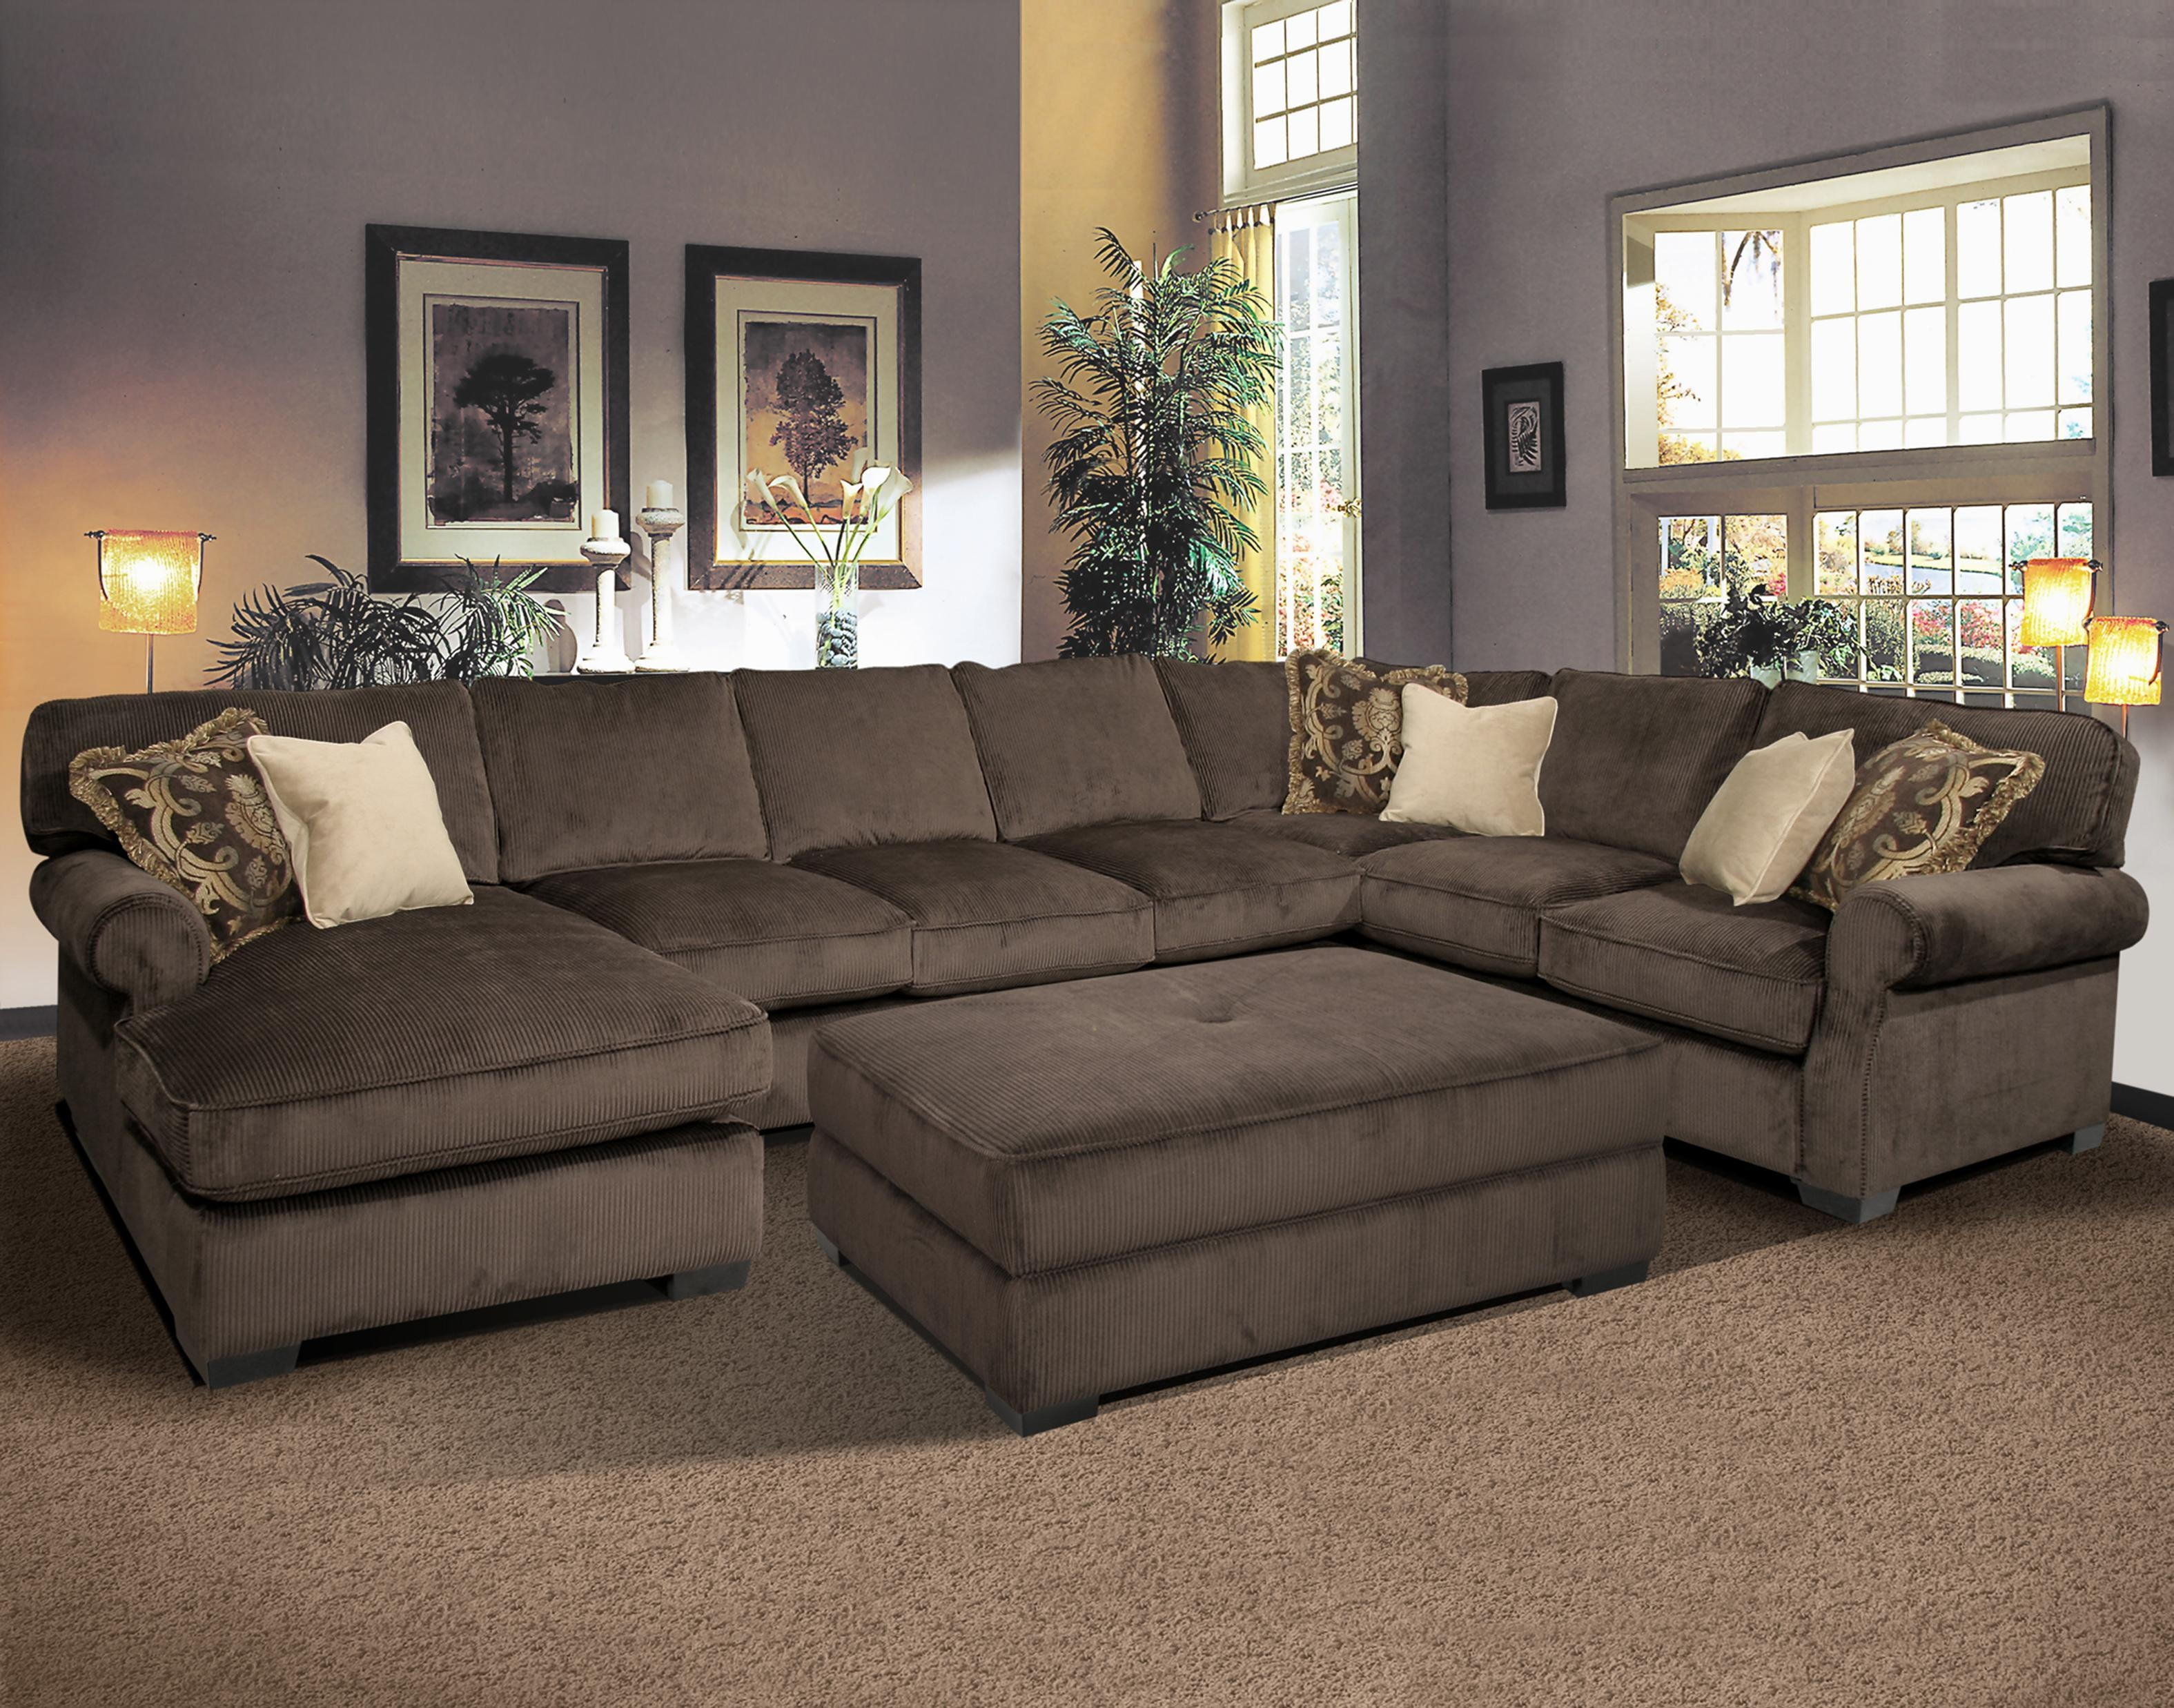 Sofa: Outstanding Deep Sectional Sofa 2017 Ideas Cheap Sectional For Large Comfortable Sectional Sofas (View 2 of 20)